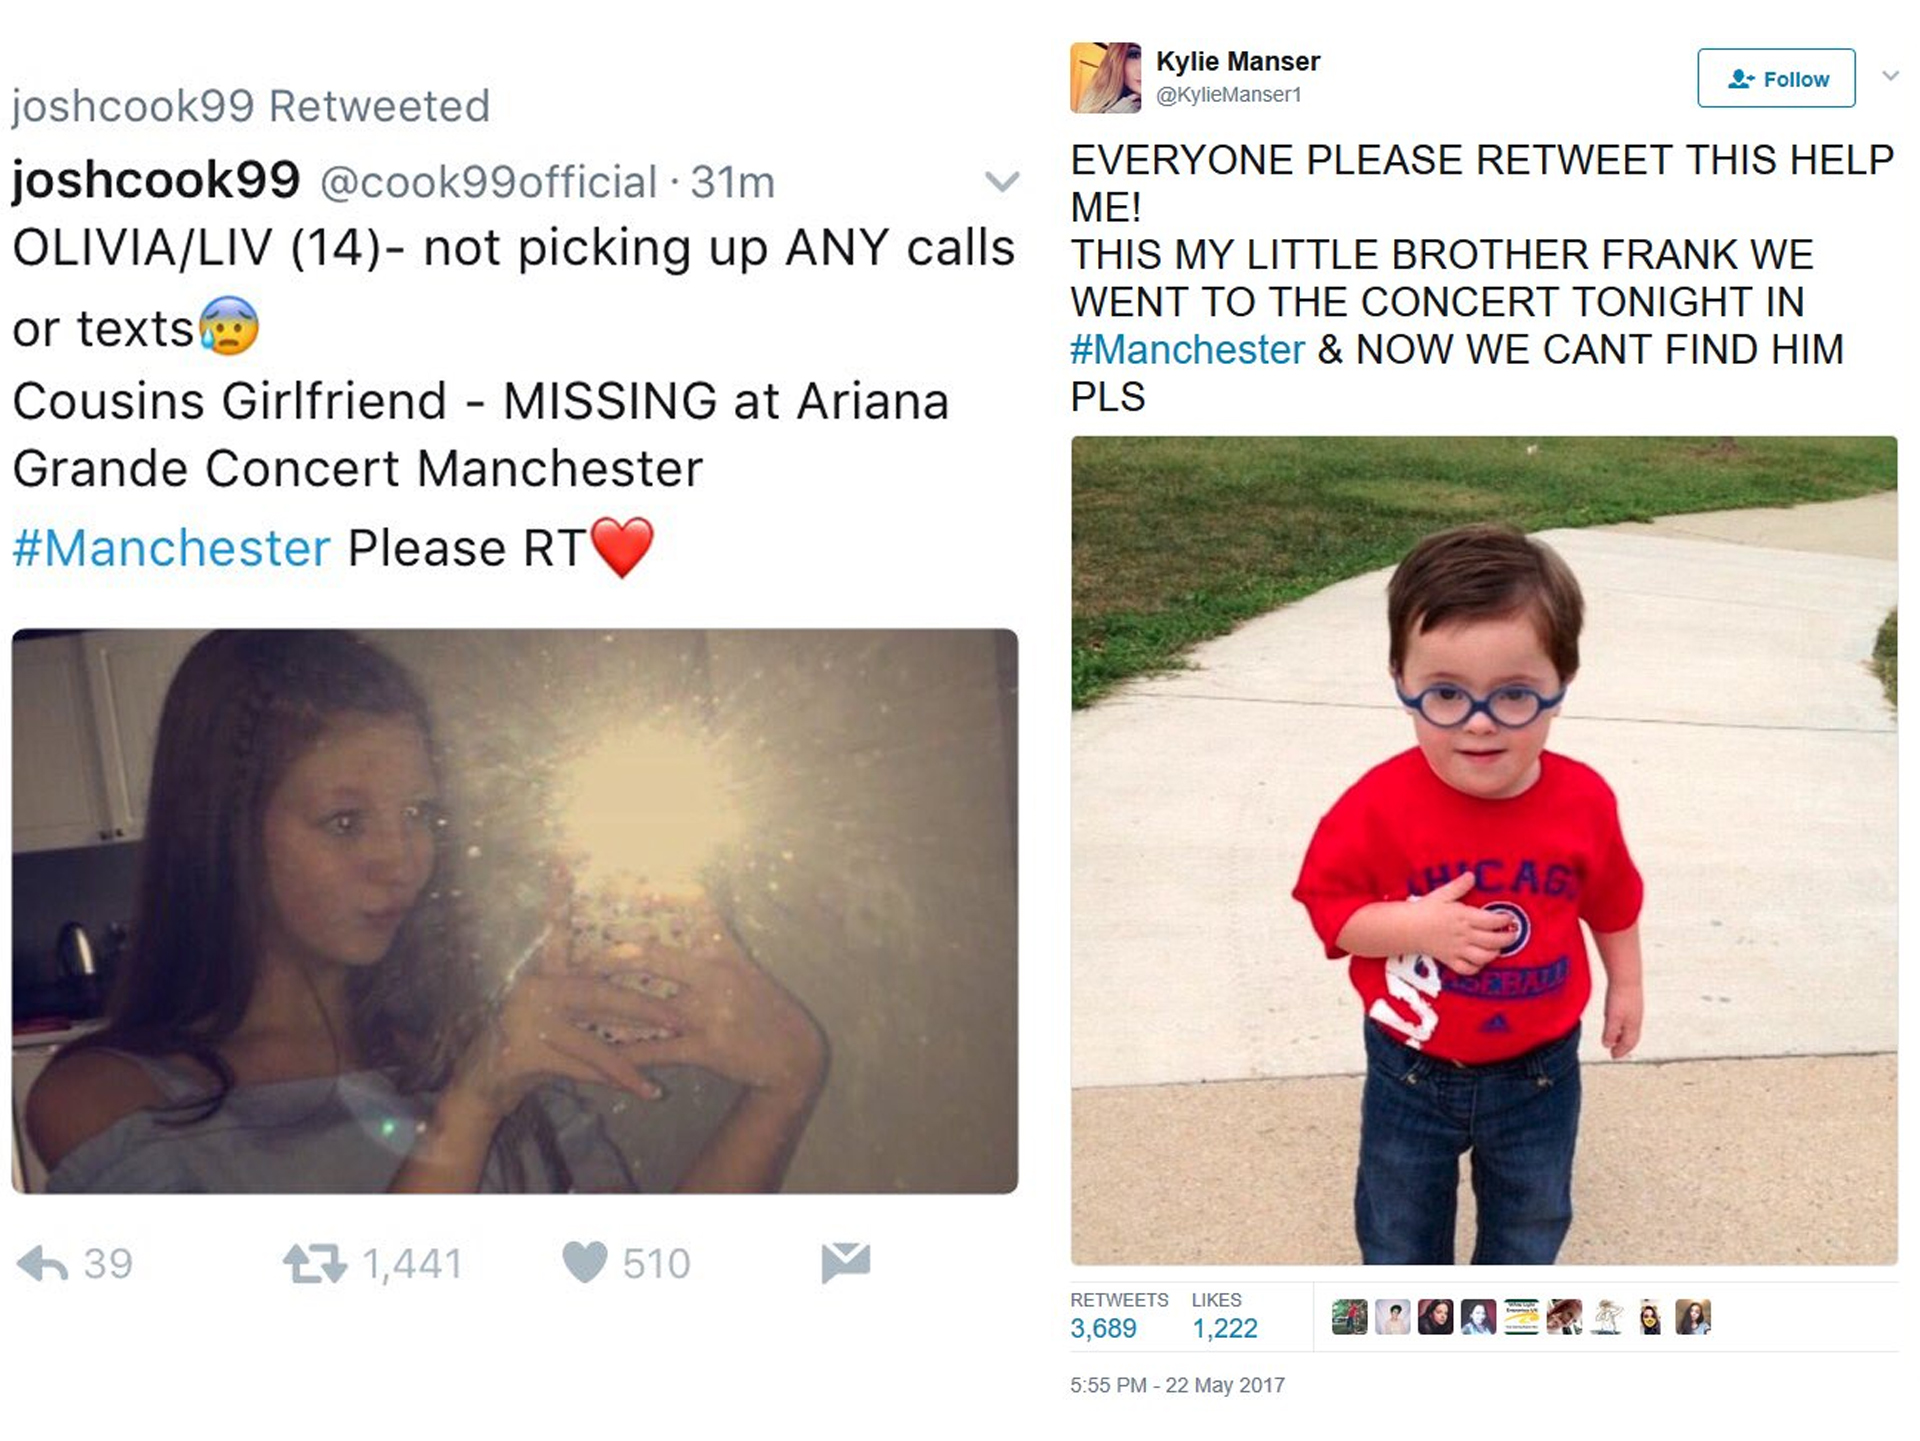 Olivia Campbell, missing Ariana Grande concertgoer in Manchester, has died: mom